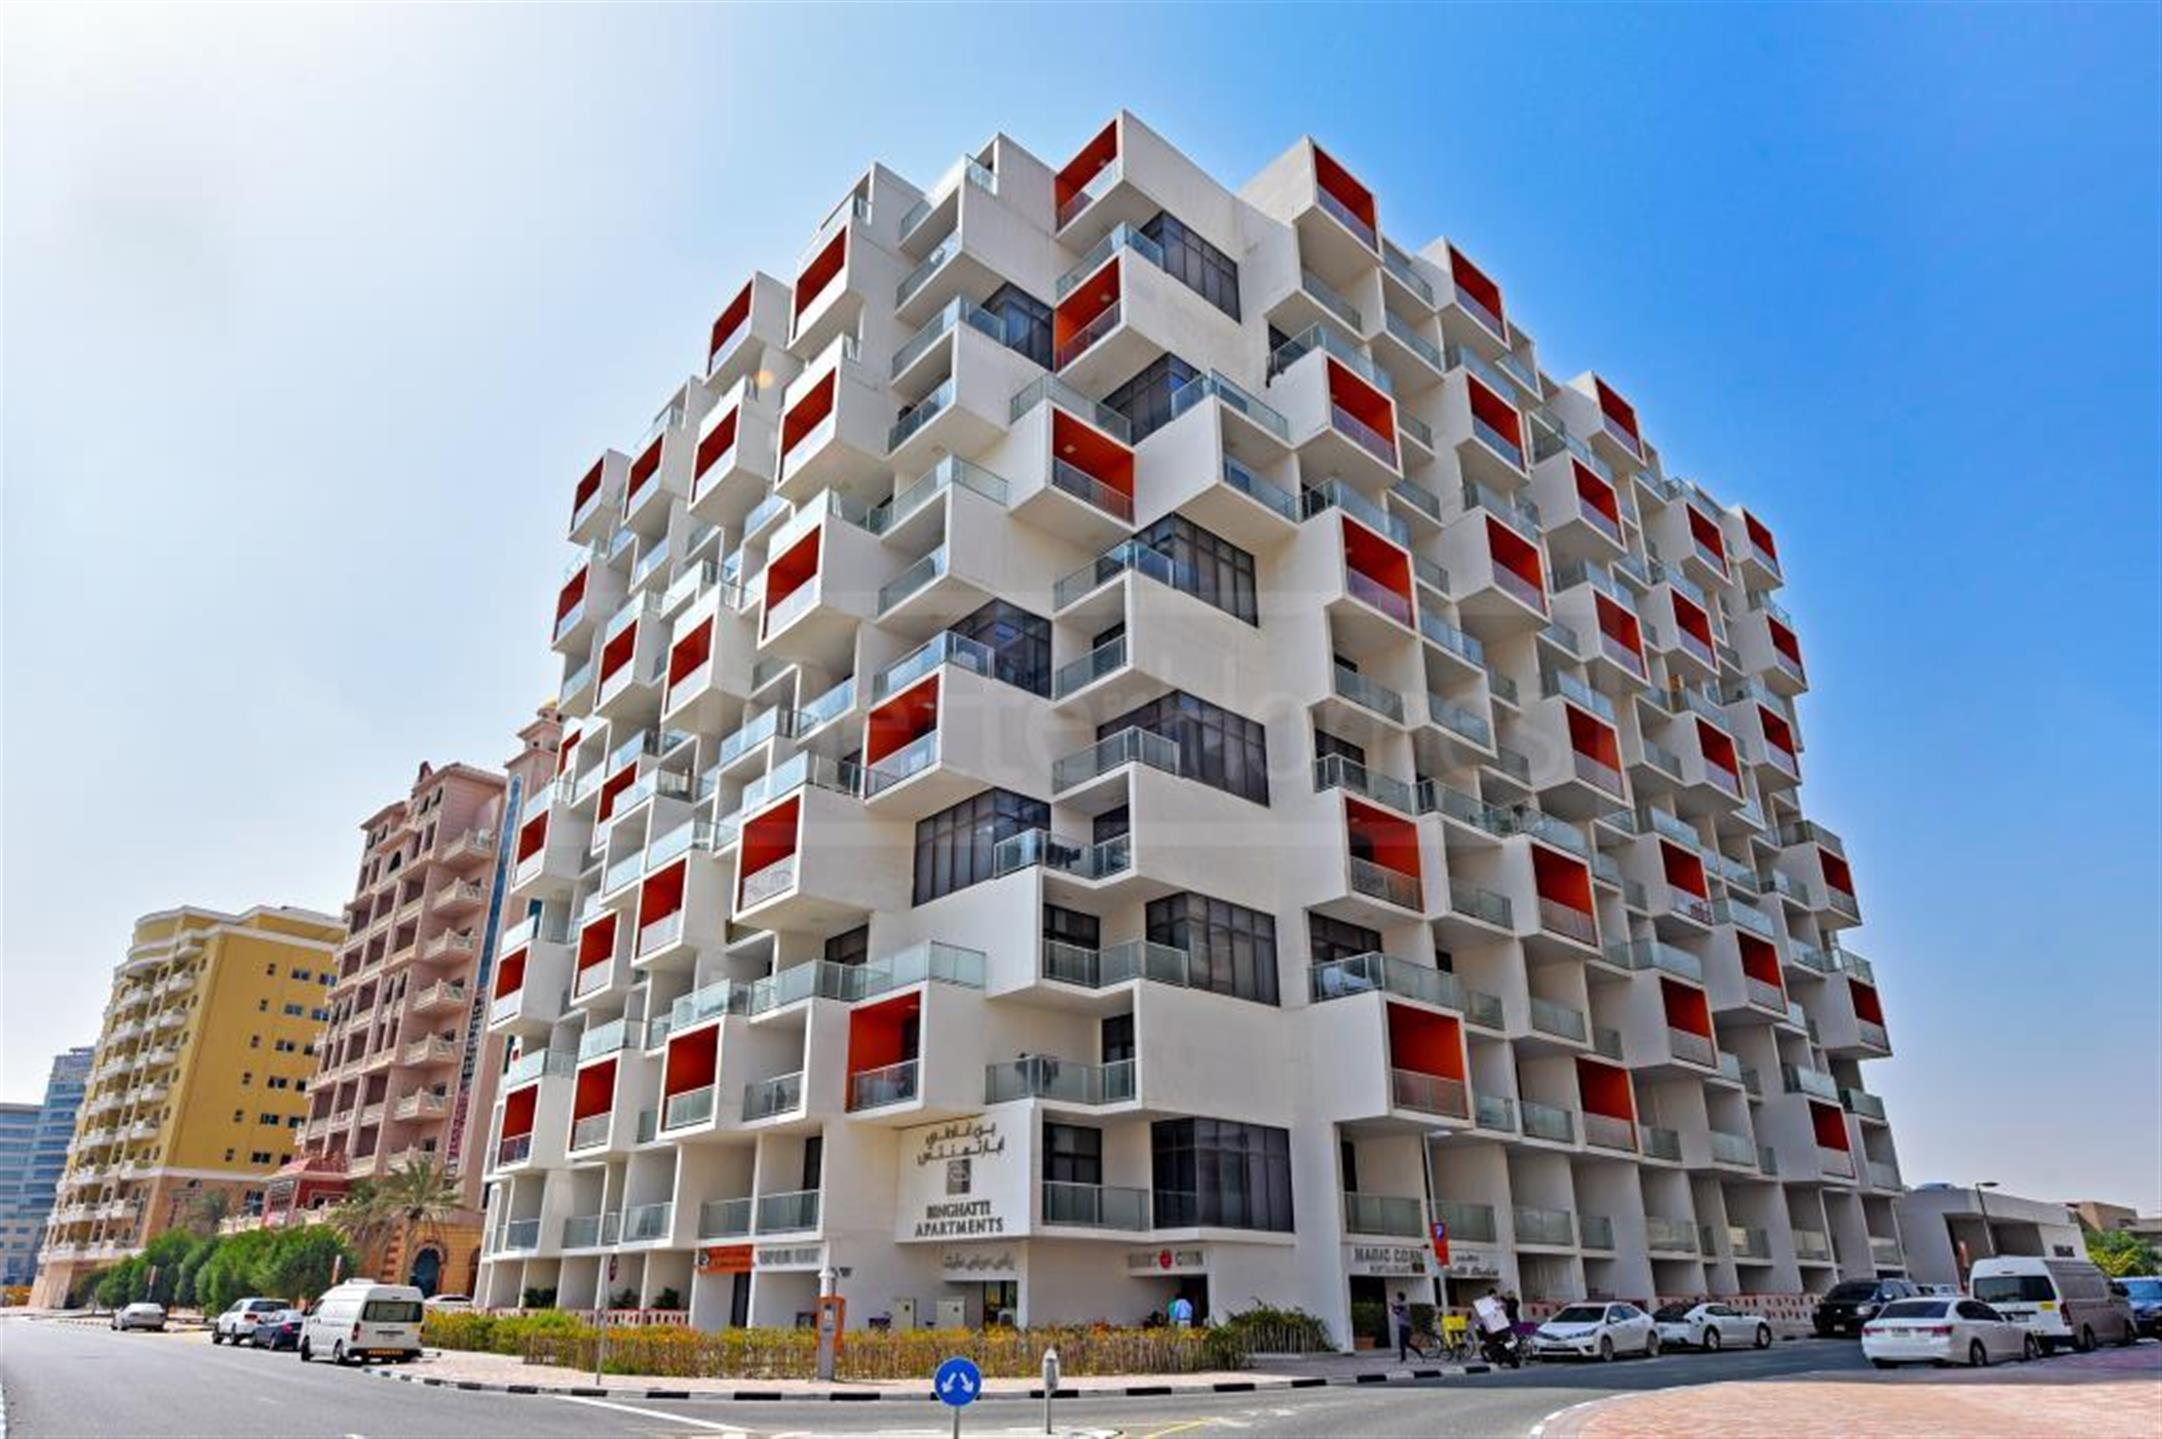 Binghatti Apartments